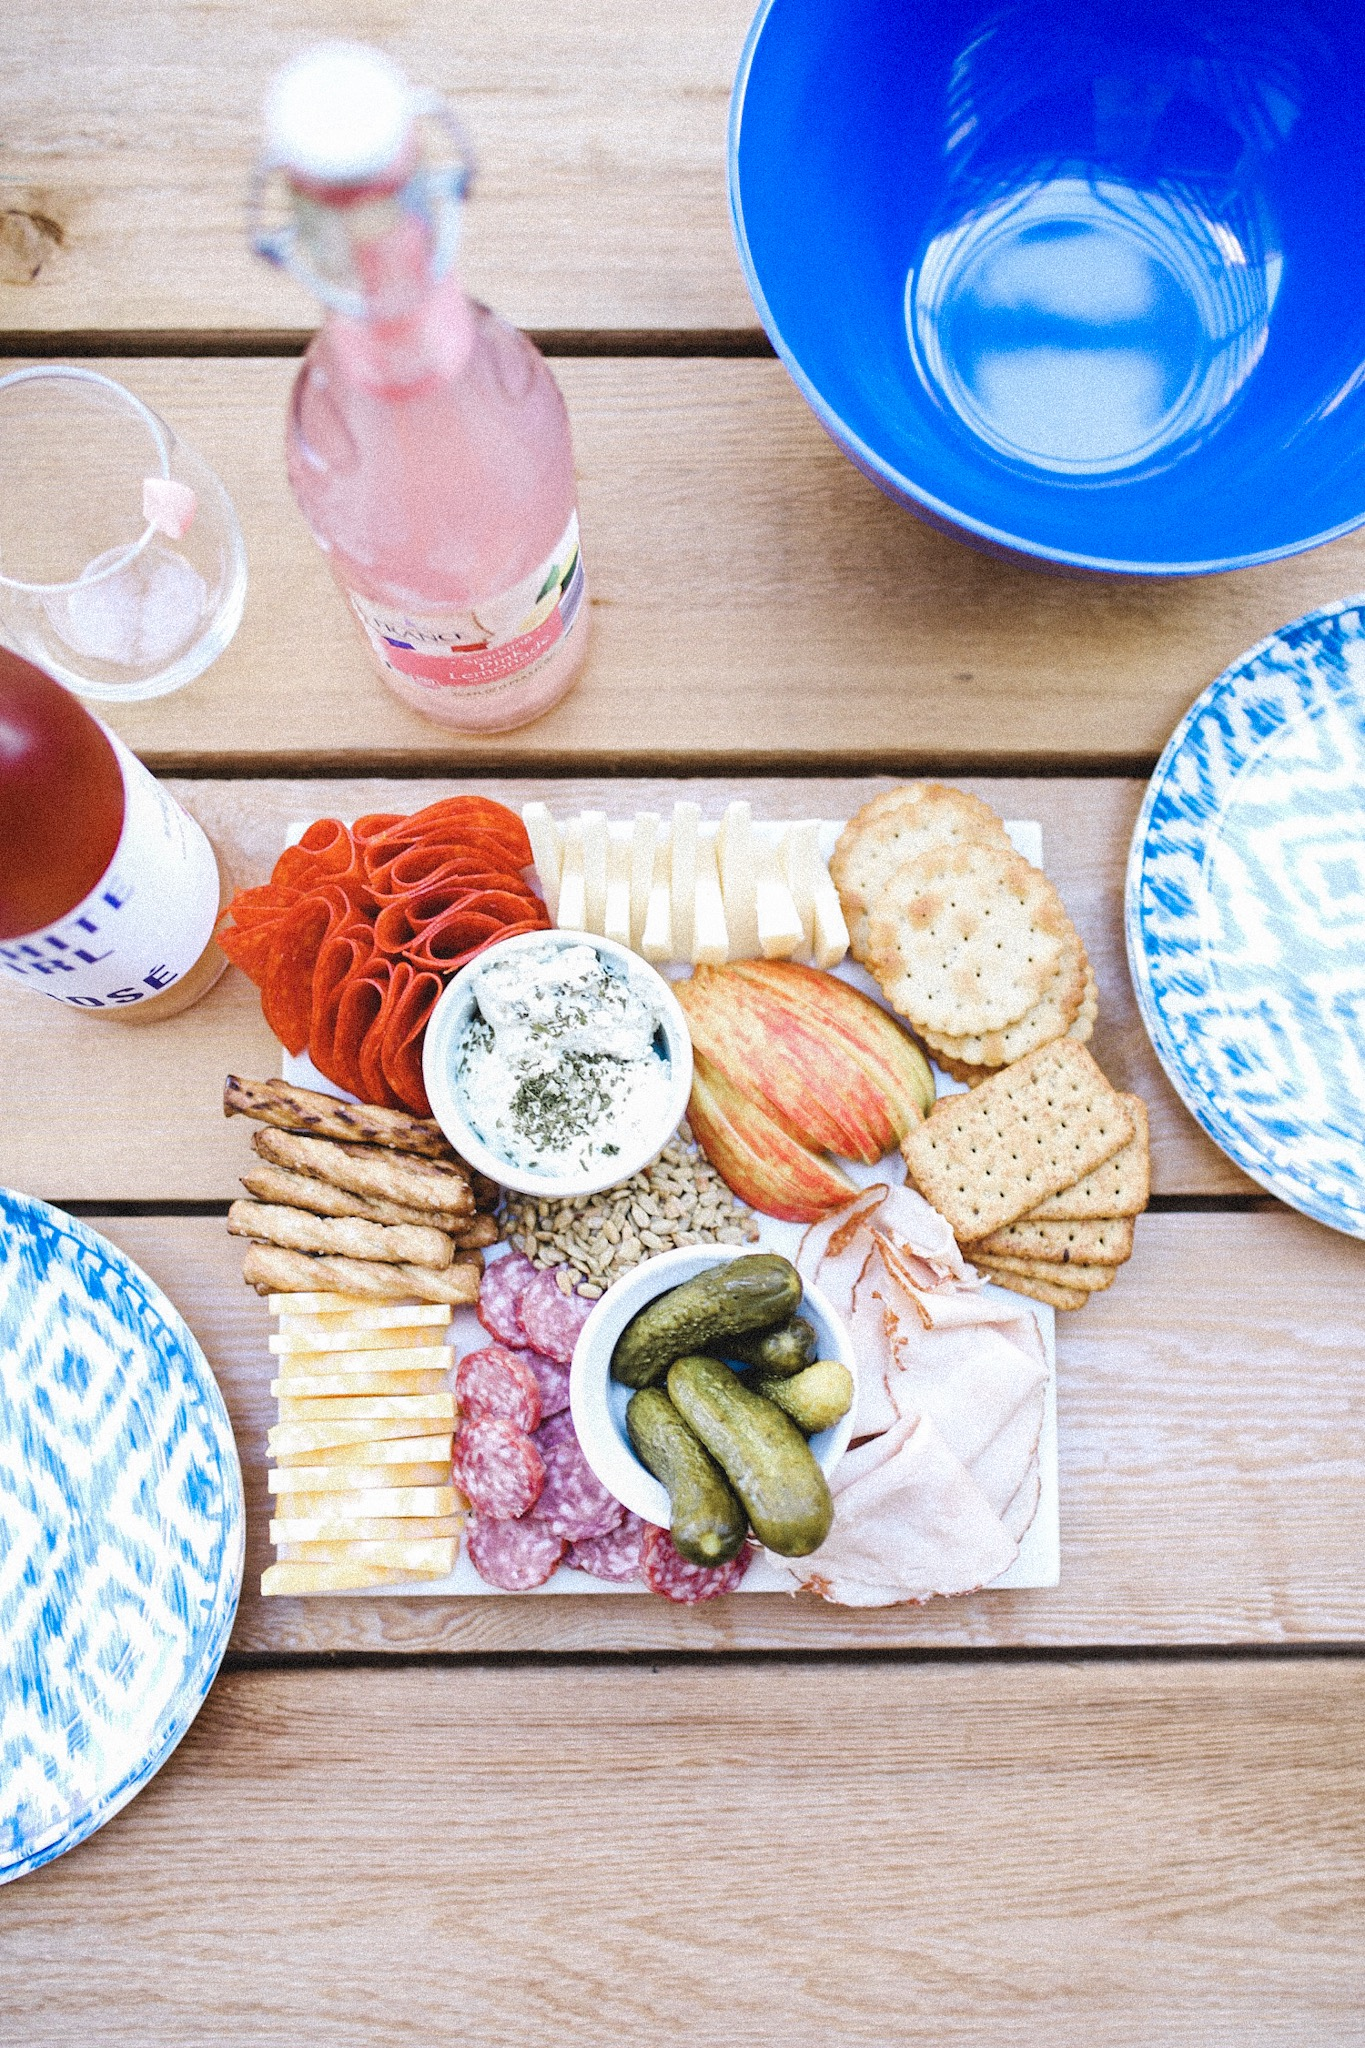 How To Make A Charcuterie Board For Under $30